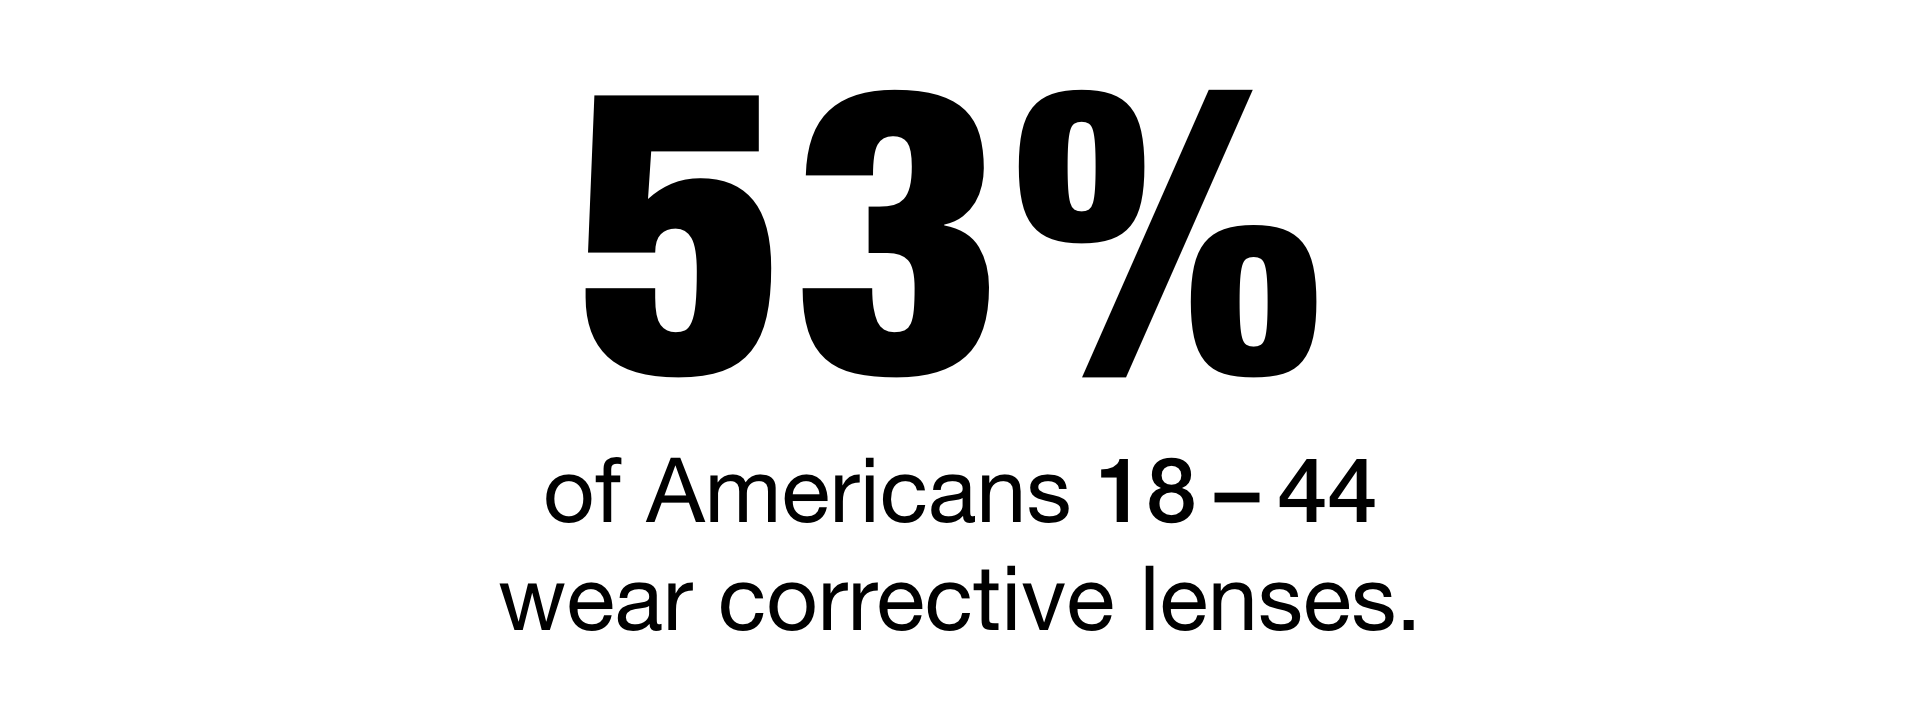 53% of Americans between 18-44 wear corrective lenses